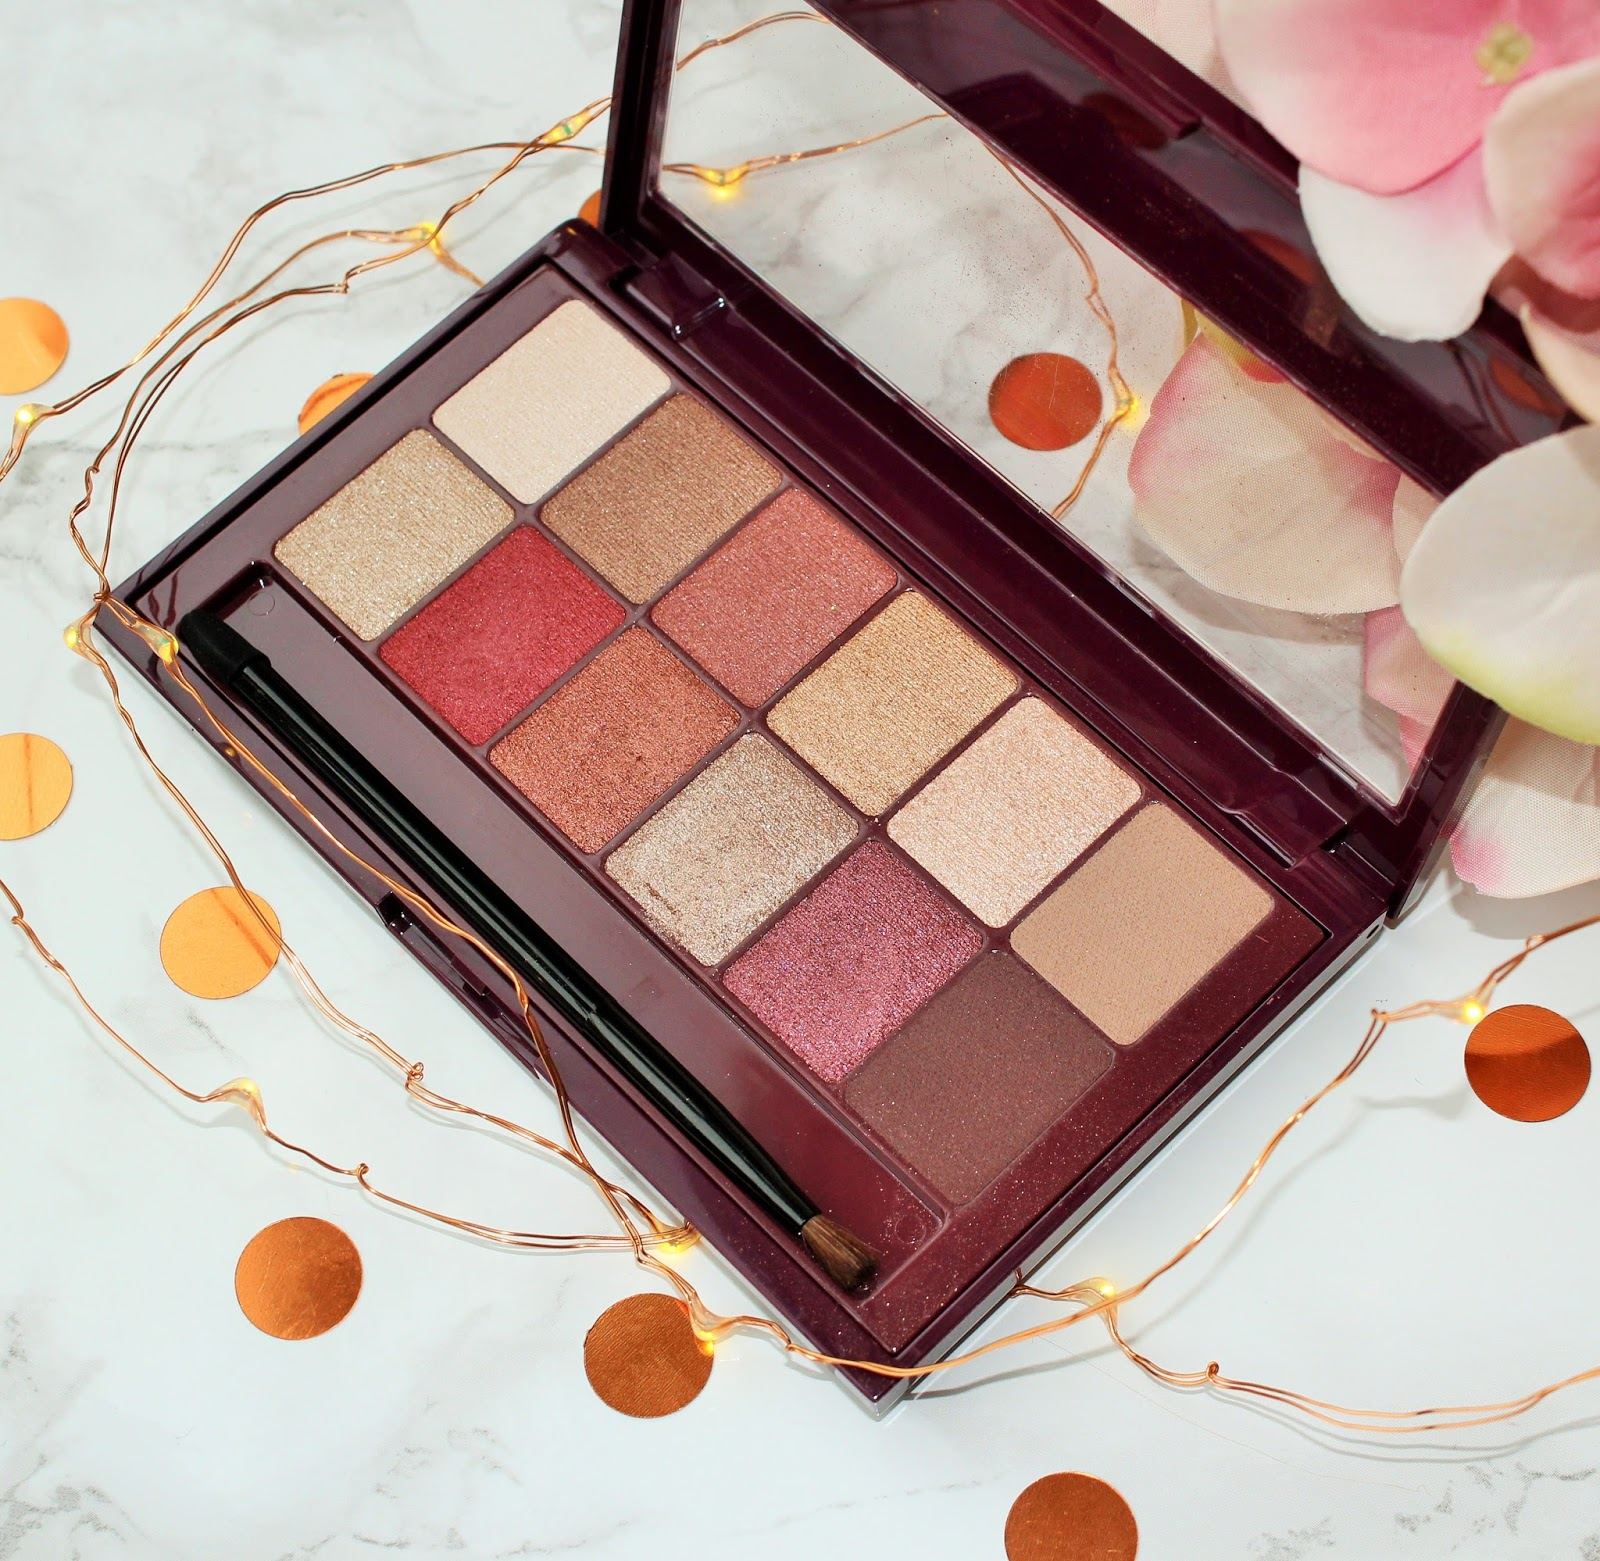 Maybelline The Burgundy Bar Eyeshadow Palette Review - 2